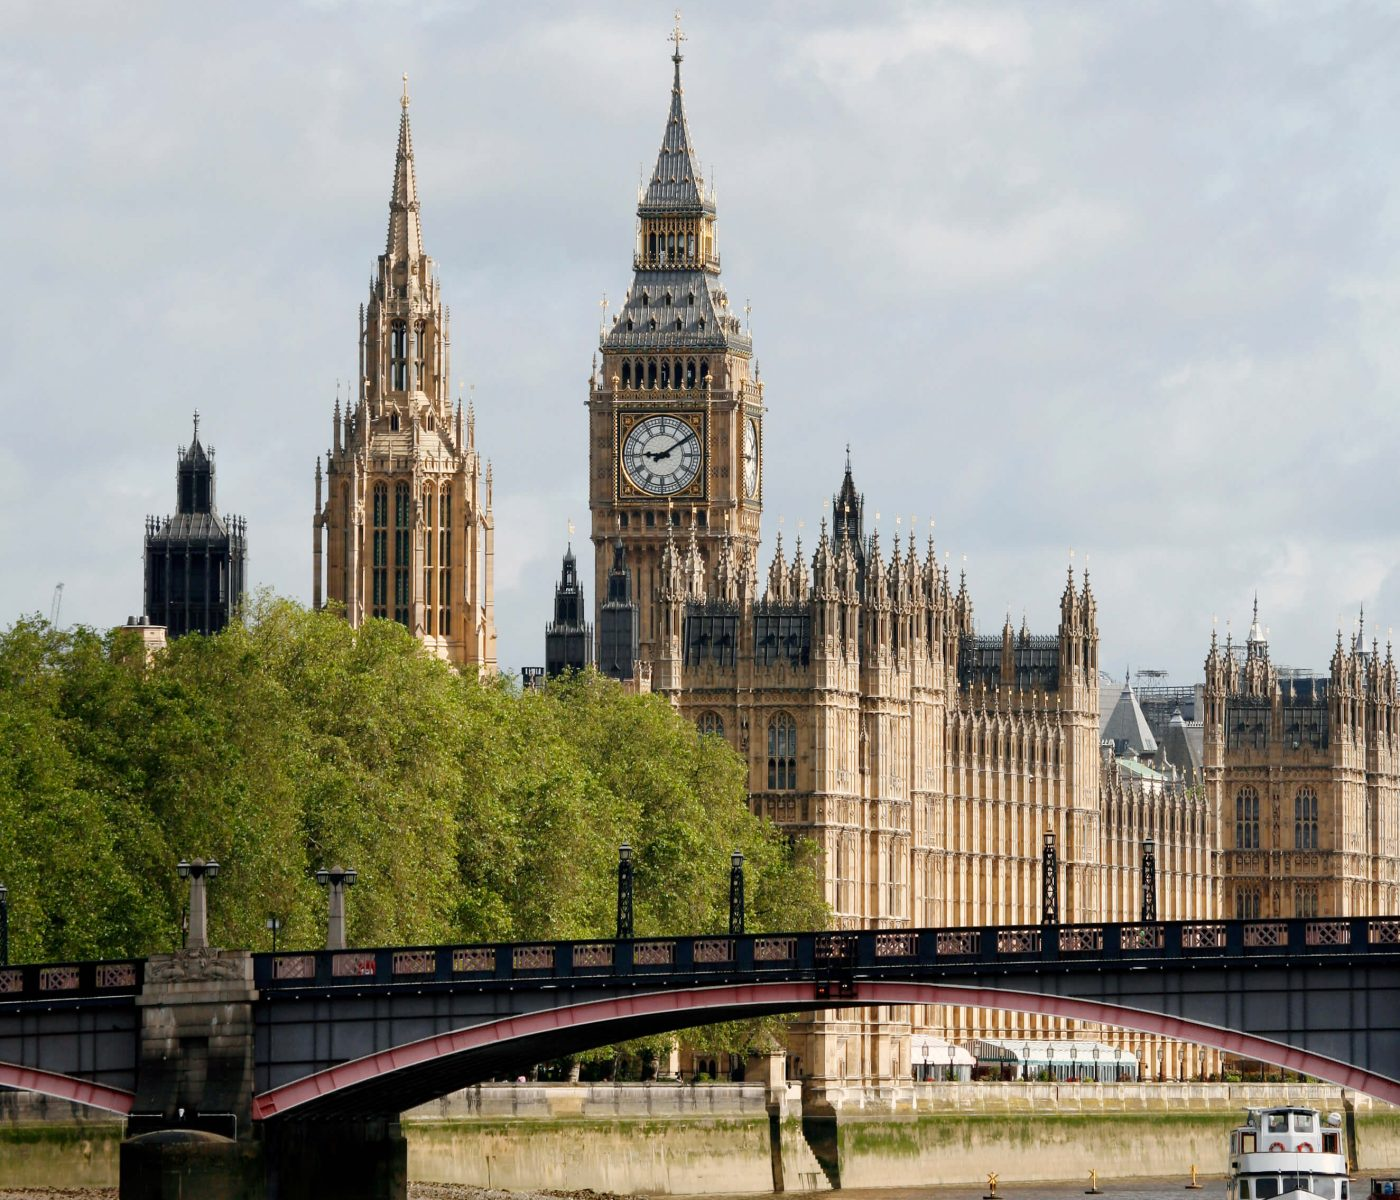 London skyline, Westminster Palace, Big Ben and Central Tower, seen from South Bank